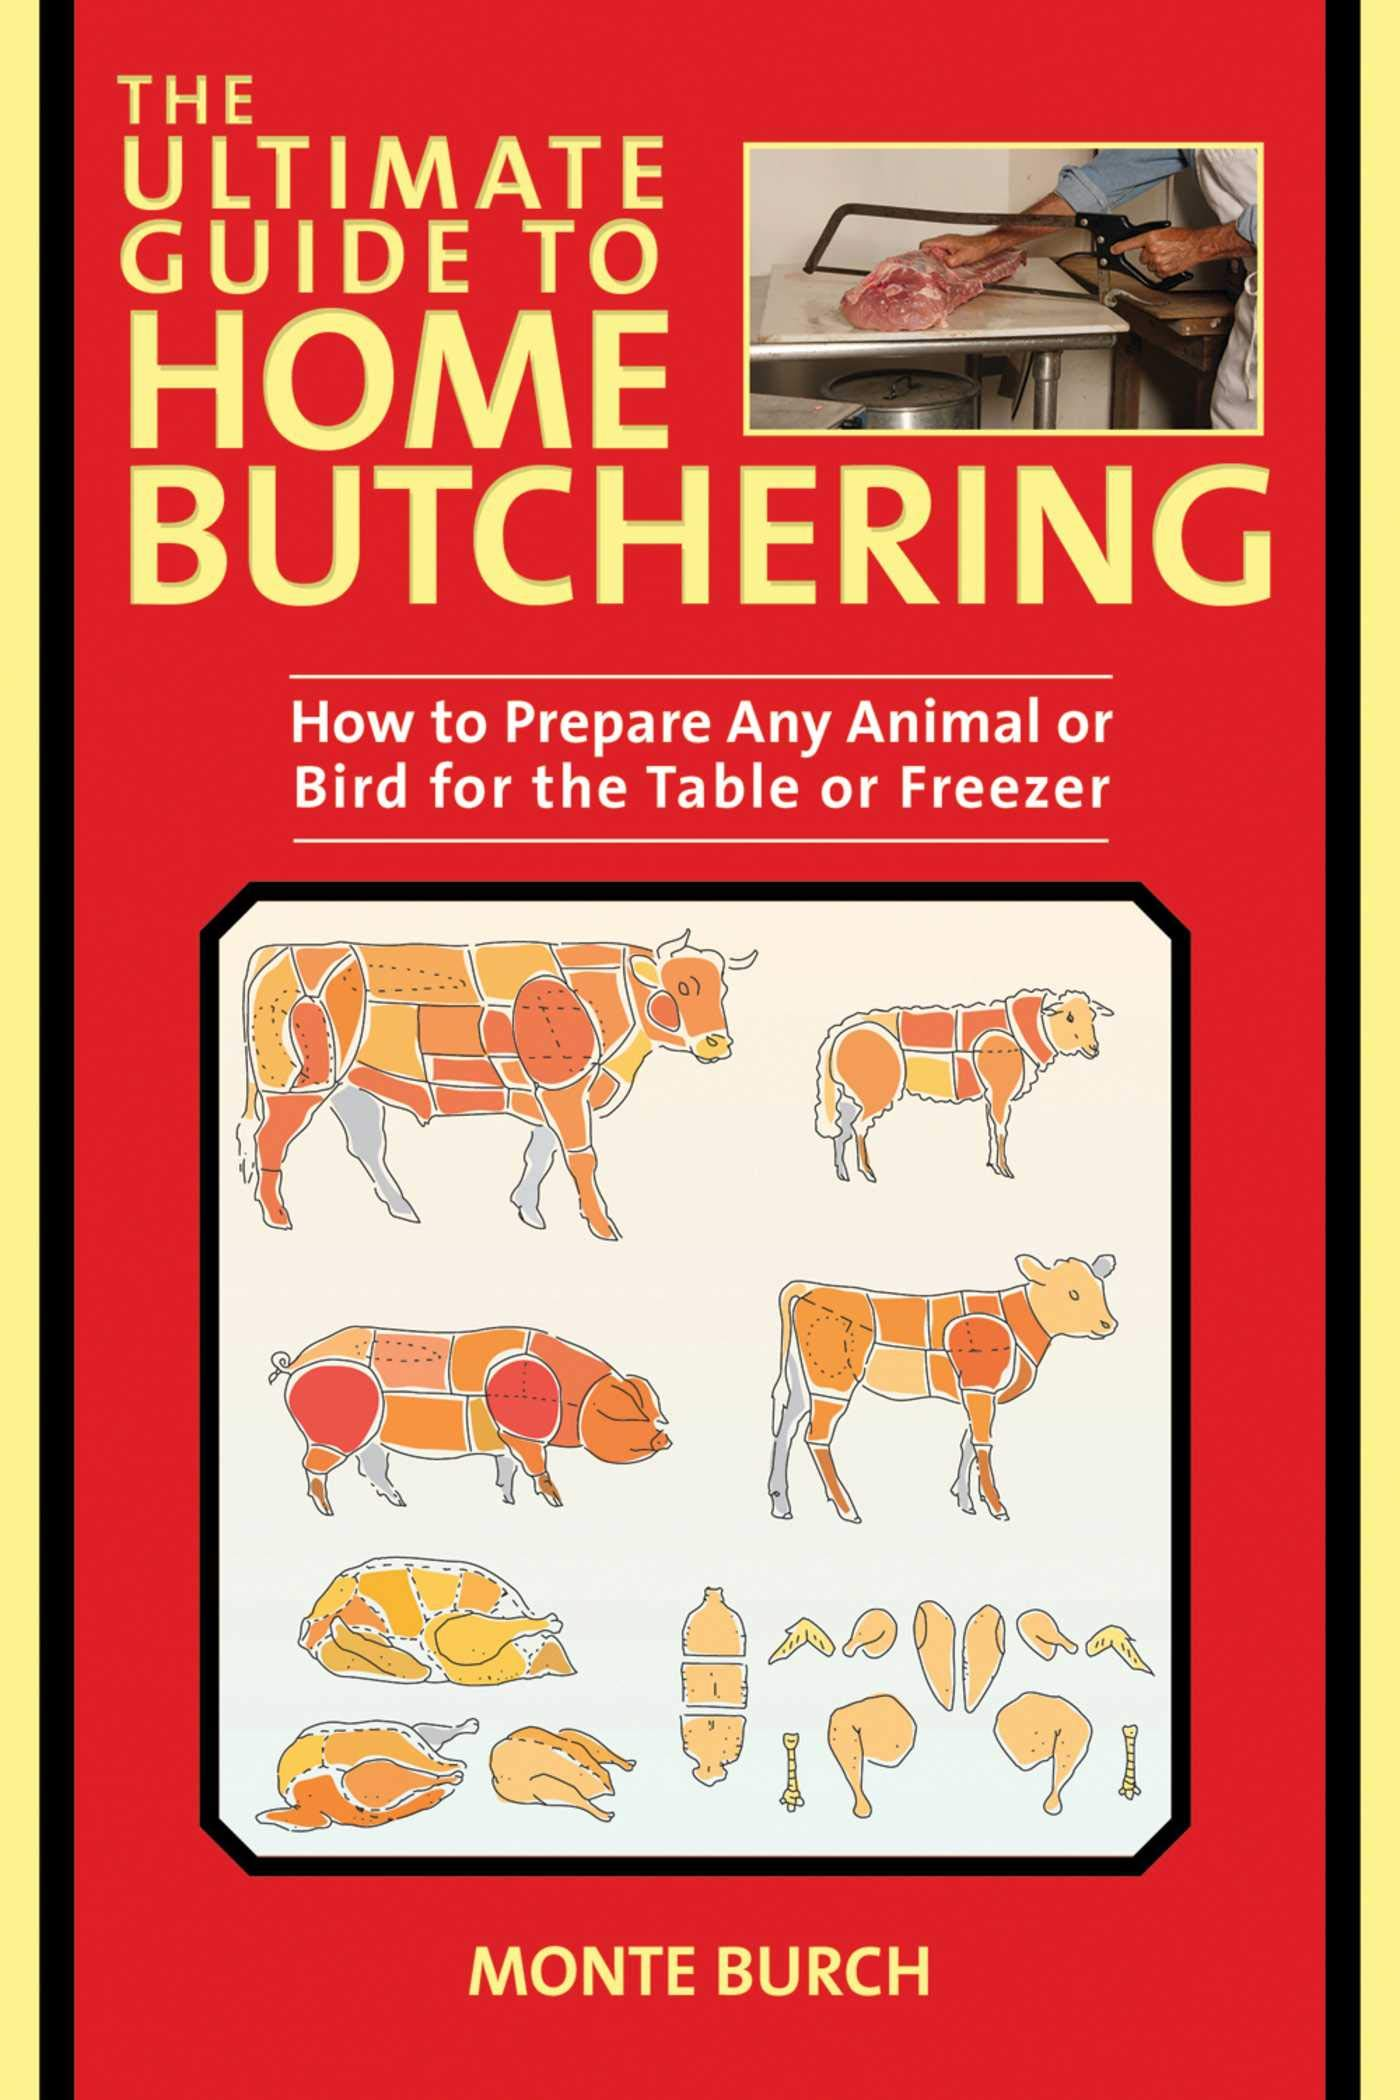 The Ultimate Guide To Home Butchering  How To Prepare Any Animal Or Bird For The Table Or Freezer